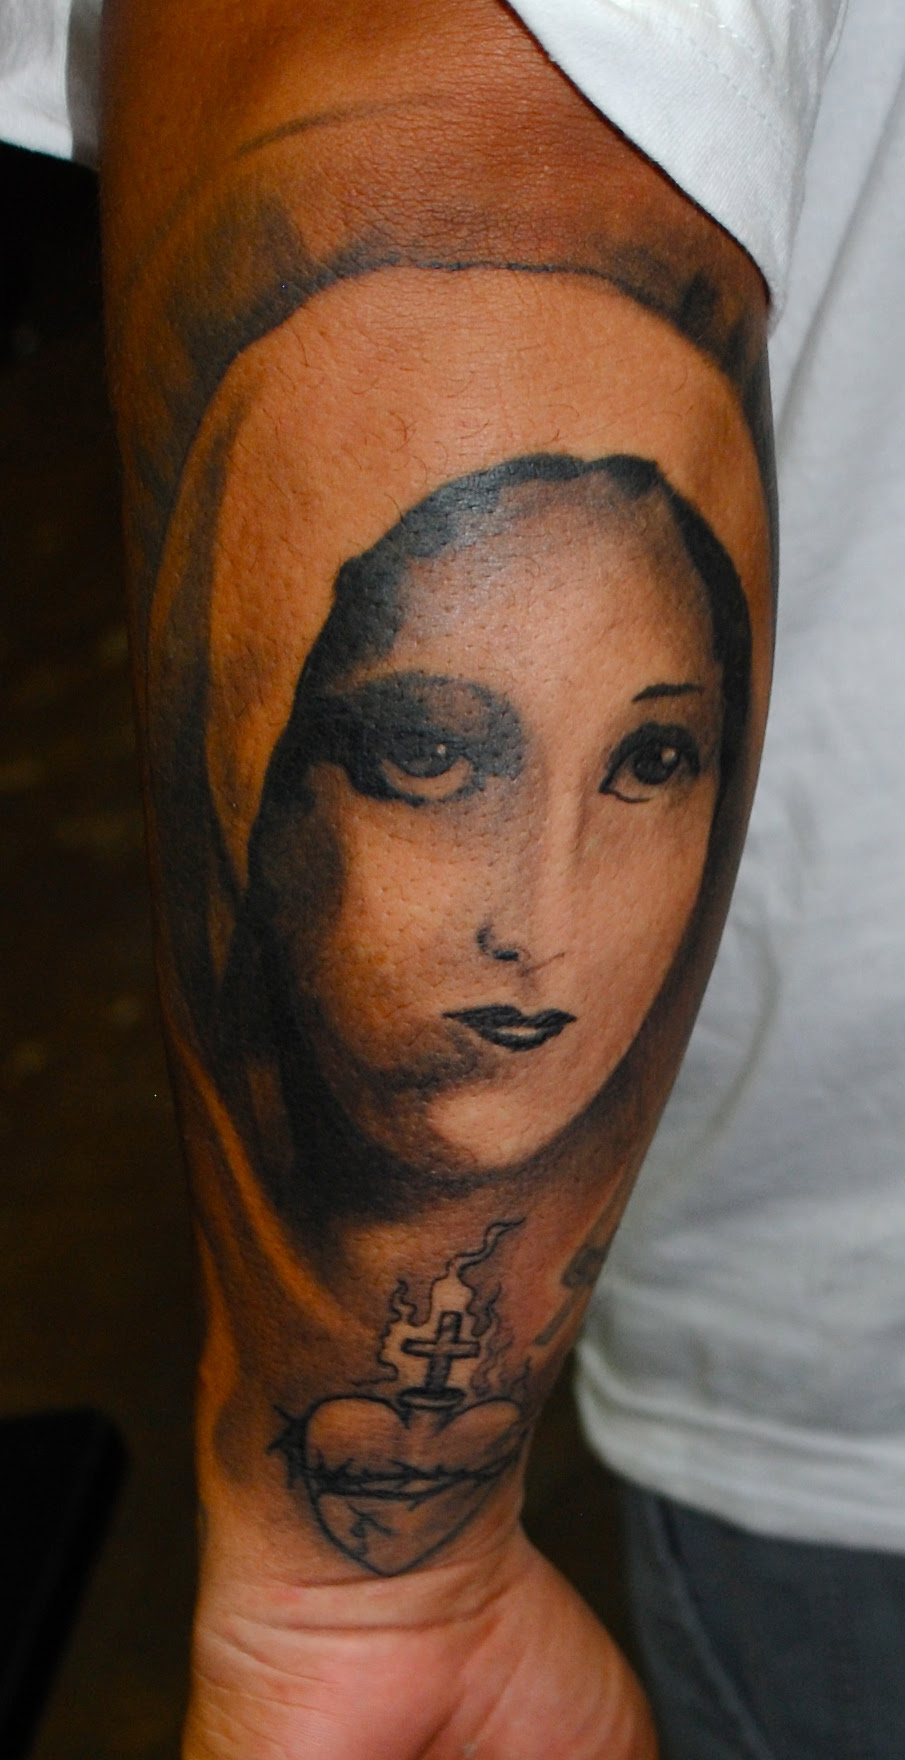 Virgin Mary Tattoos Designs, Ideas and Meaning | Tattoos